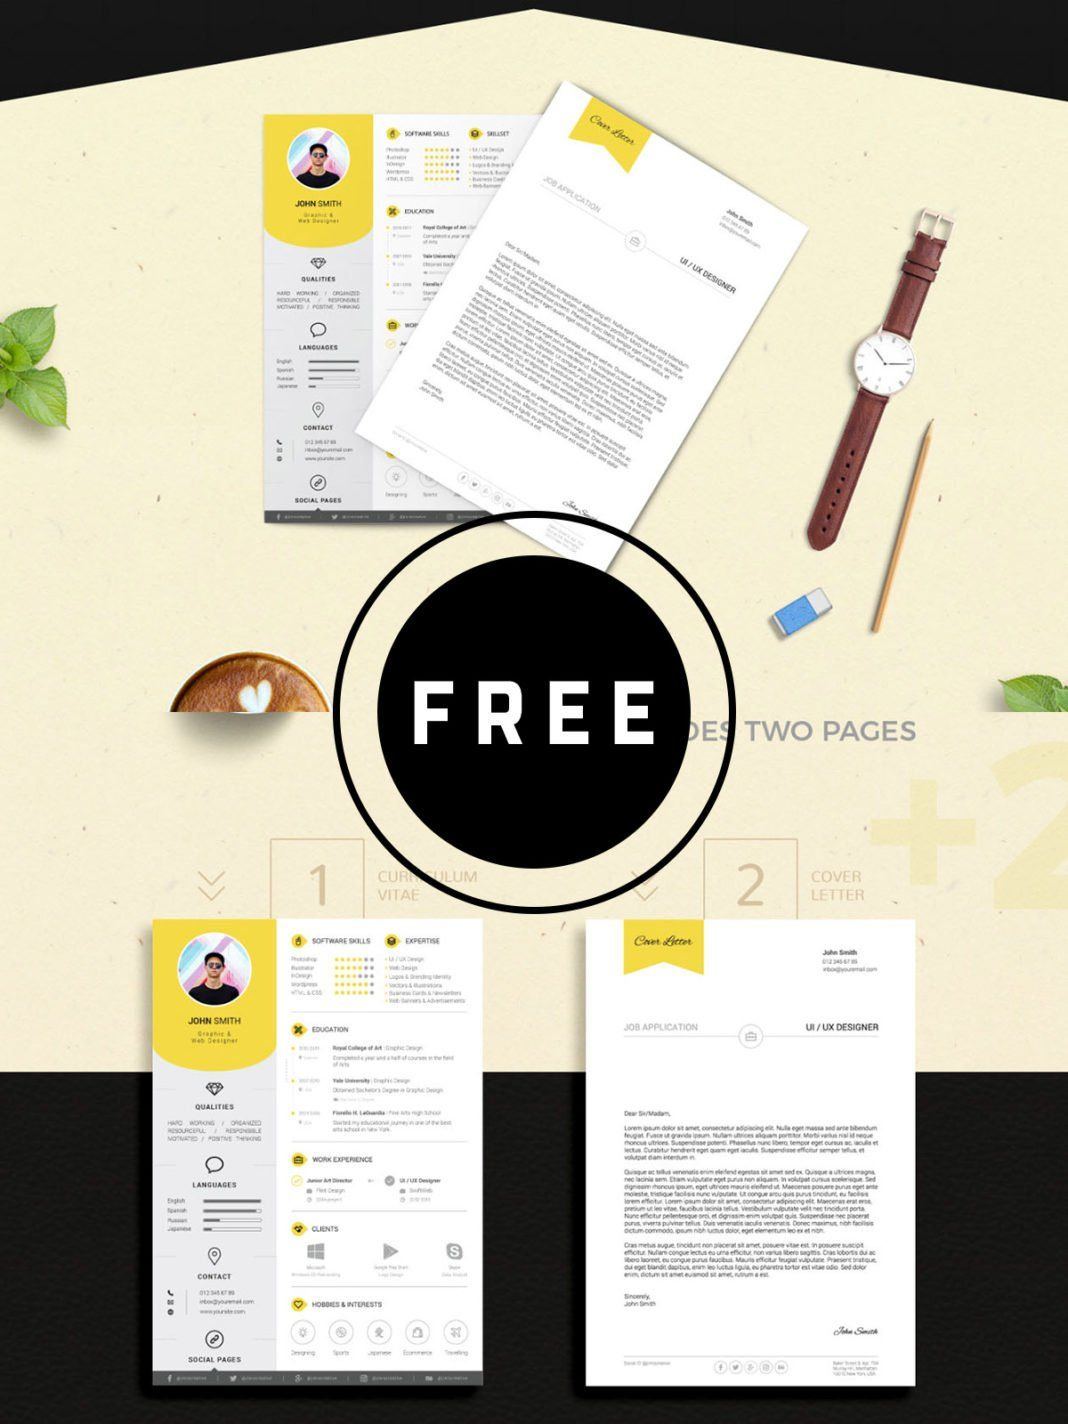 98 Awesome Free Resume Templates for 2019 Best resume